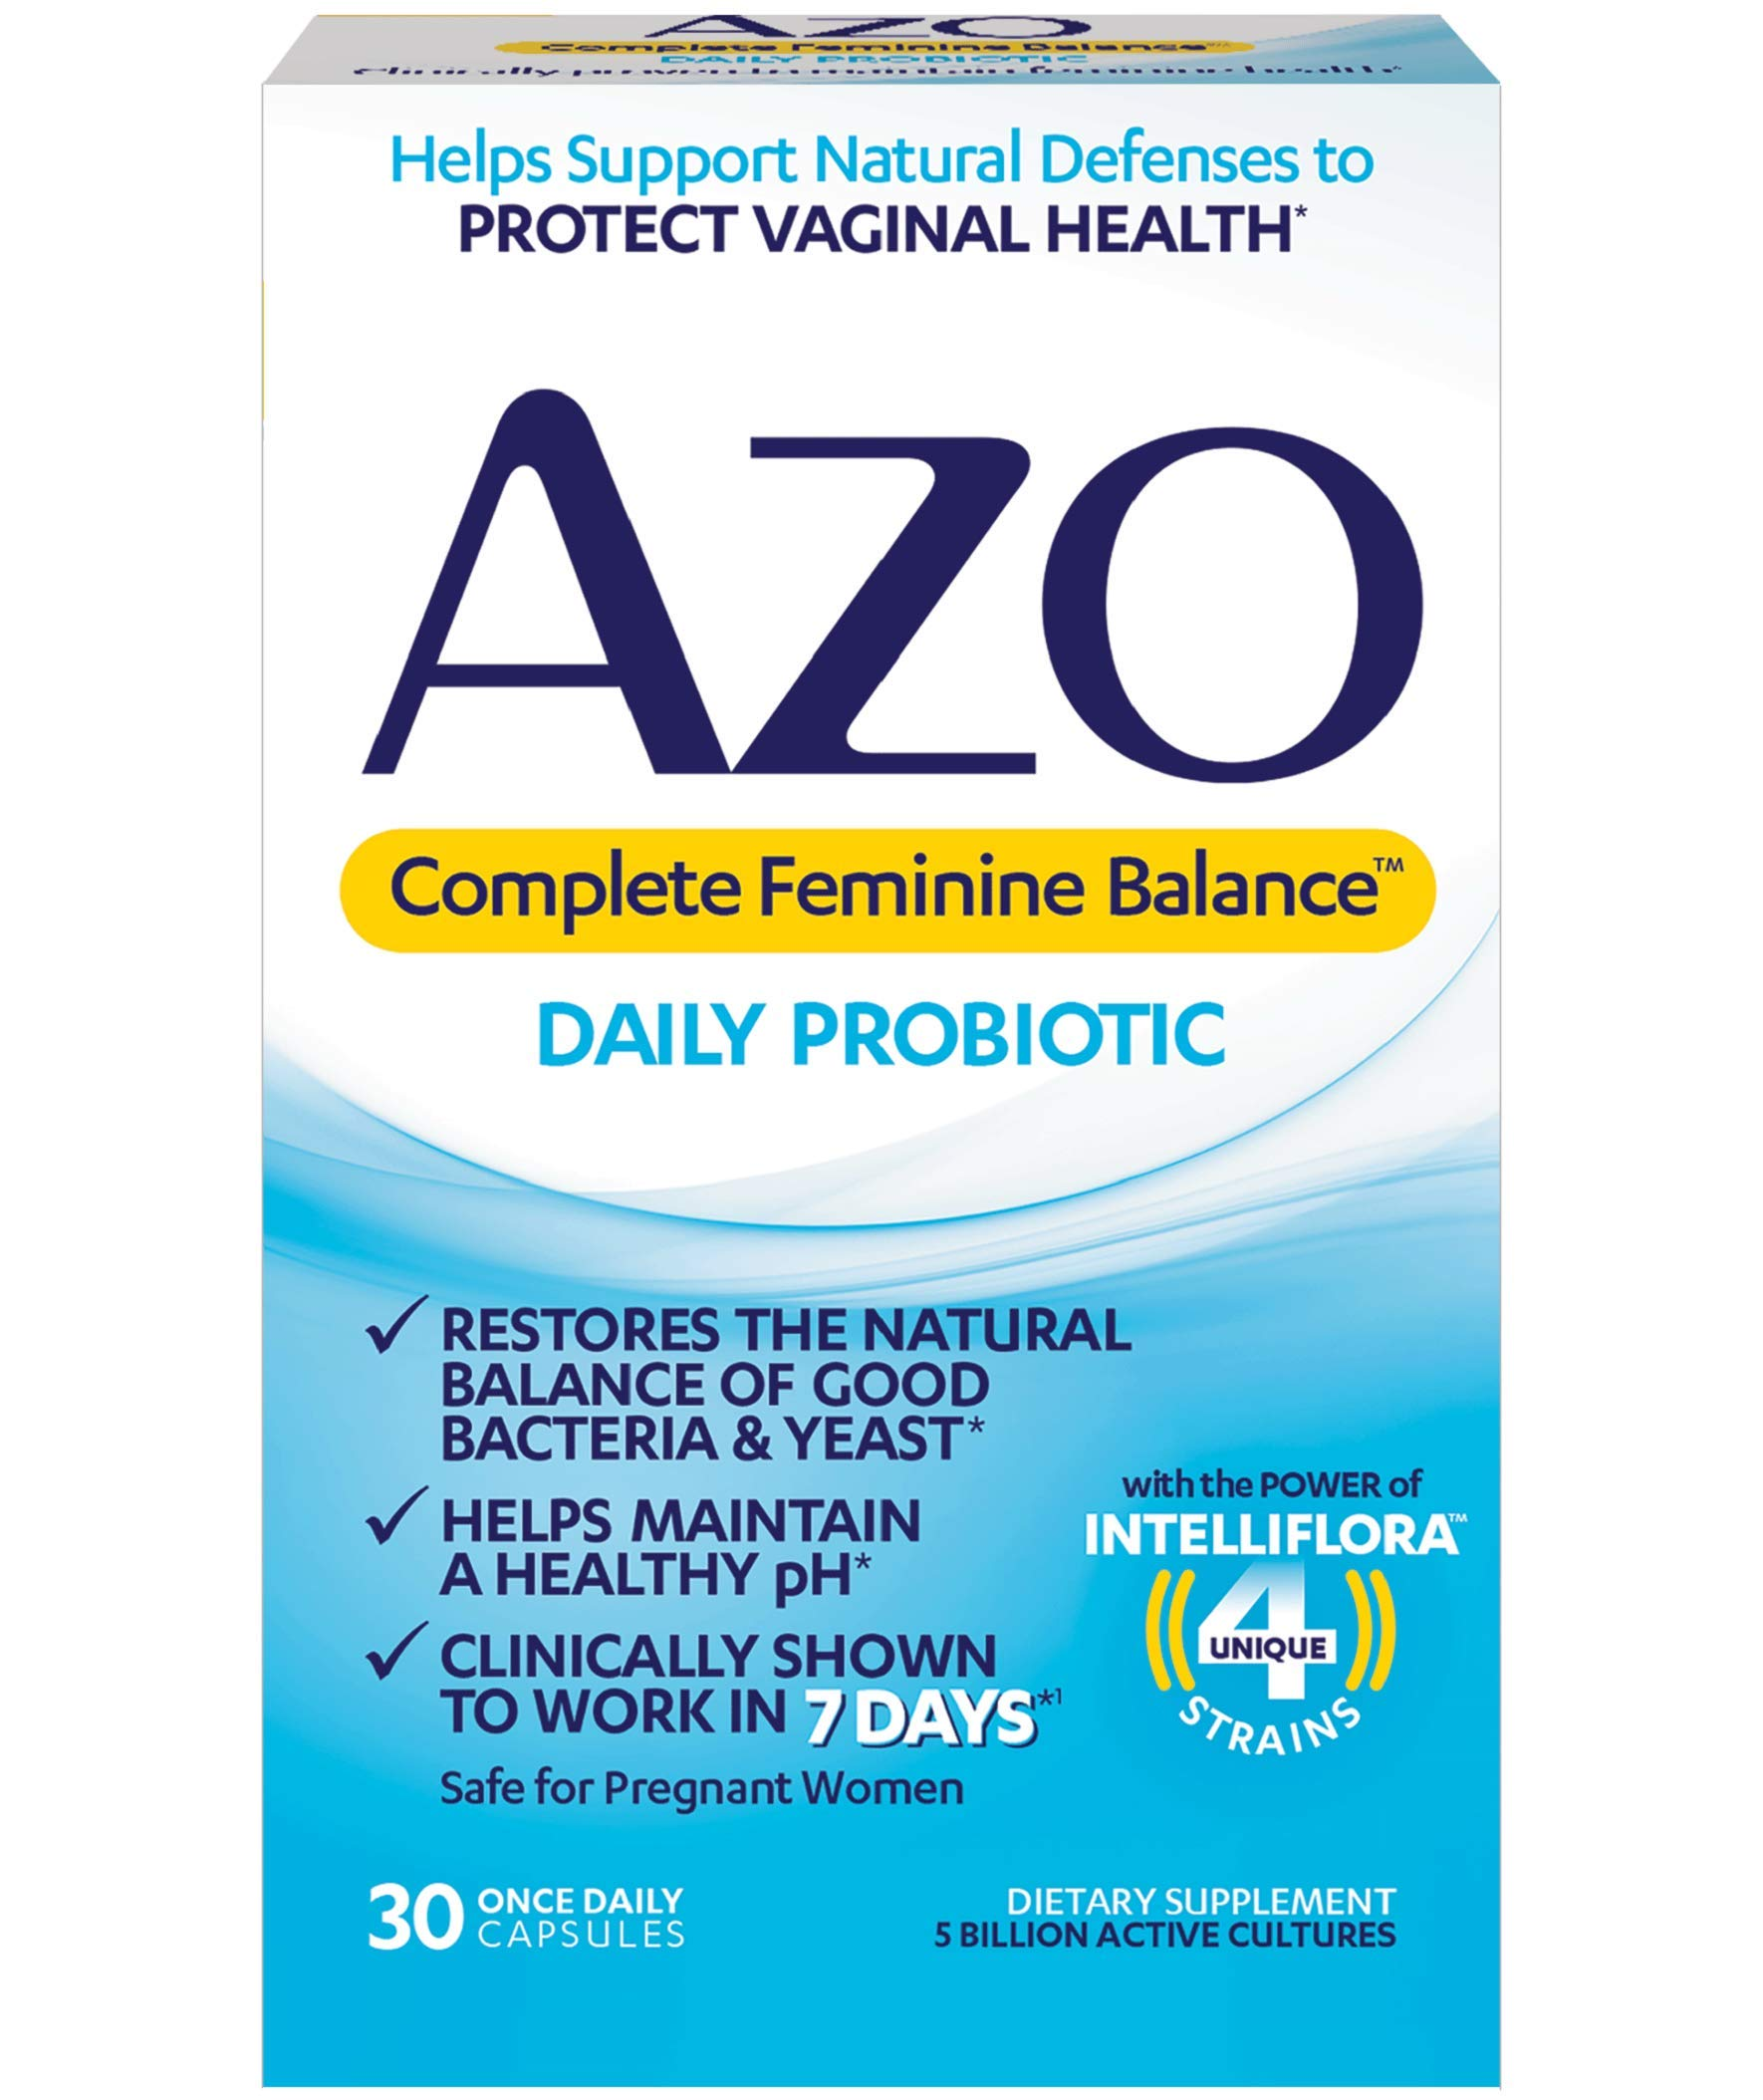 AZO Complete Feminine Balance Daily Probiotics for Women   30 Count   Clinically Proven to Help Protect Vaginal Health   Clinically Shown to Work in 7 Days* by AZO